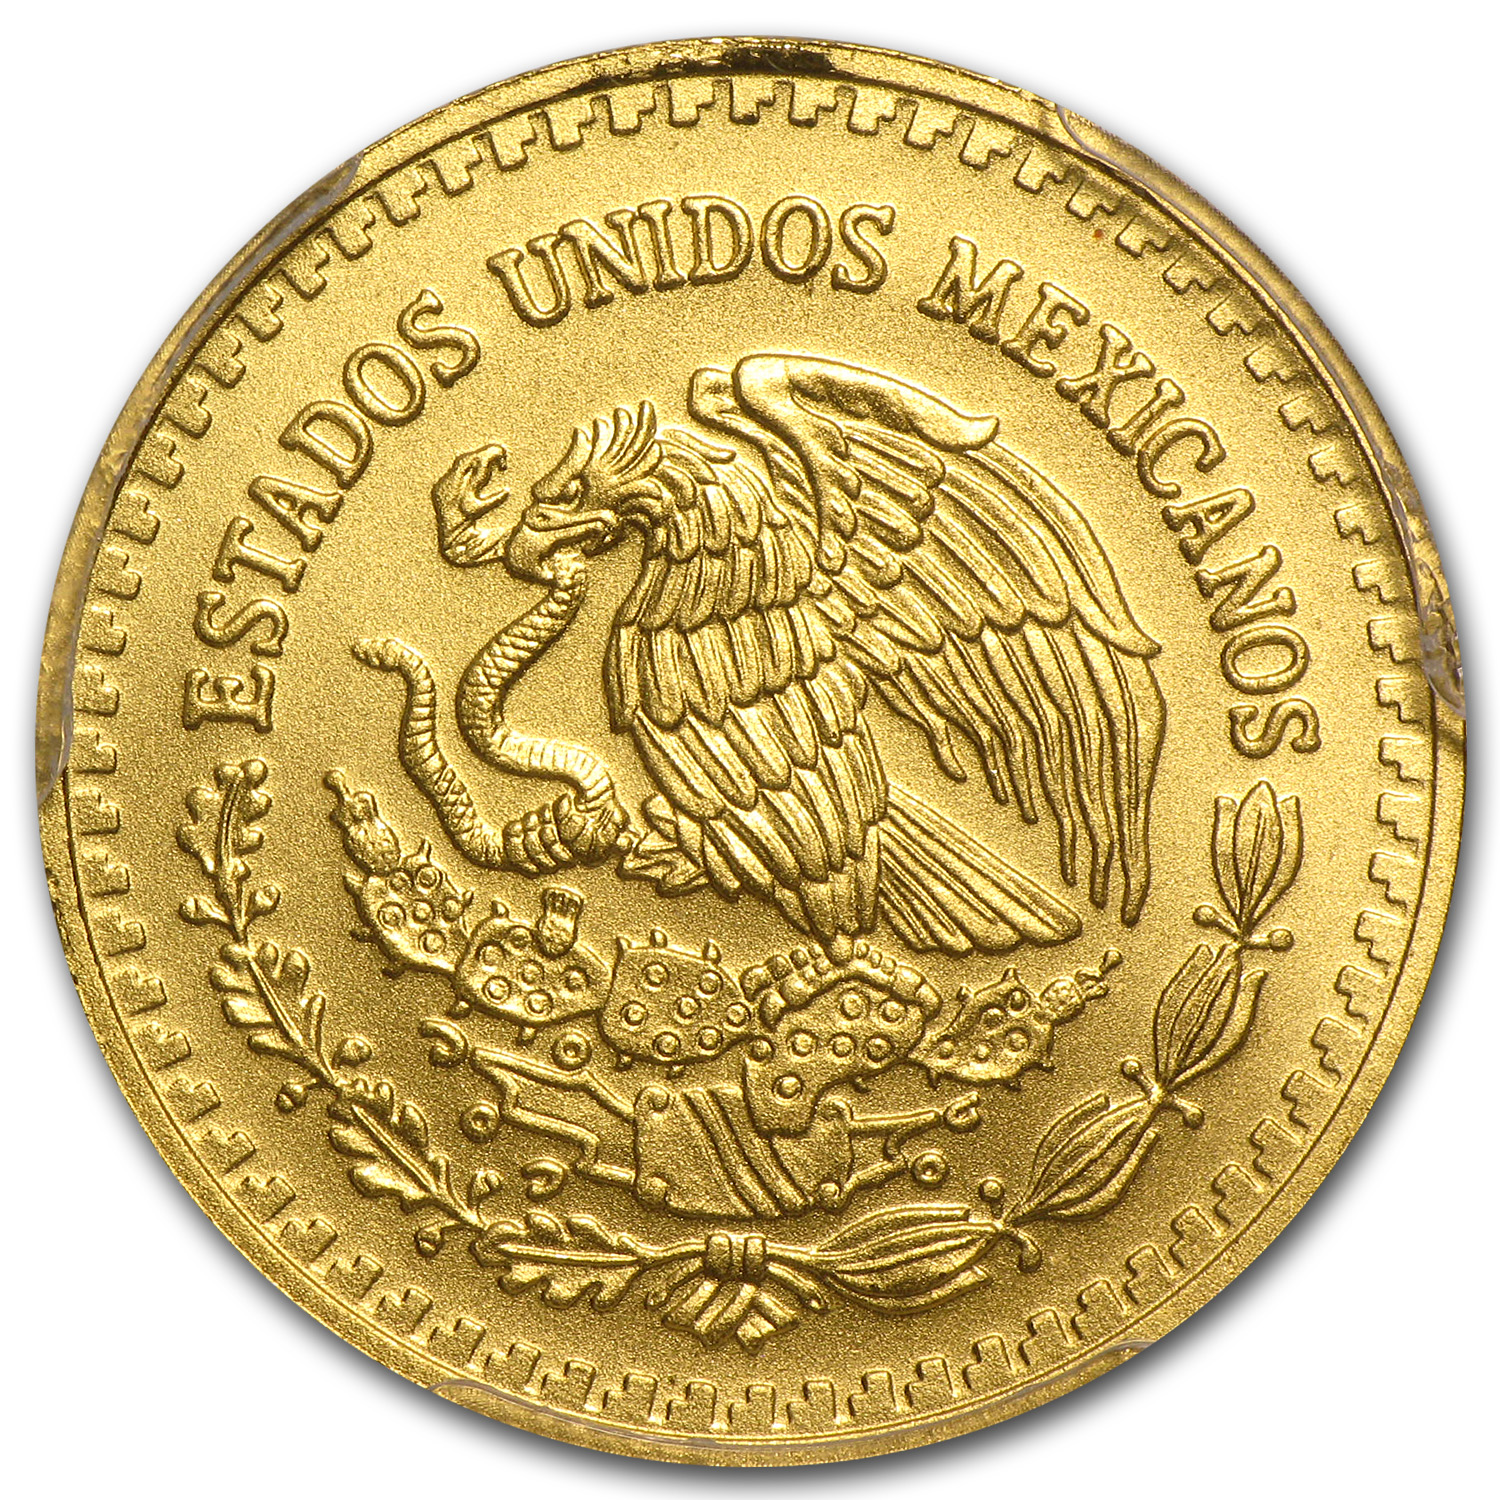 2014 Mexico 1/4 oz Gold Libertad MS-69 PCGS